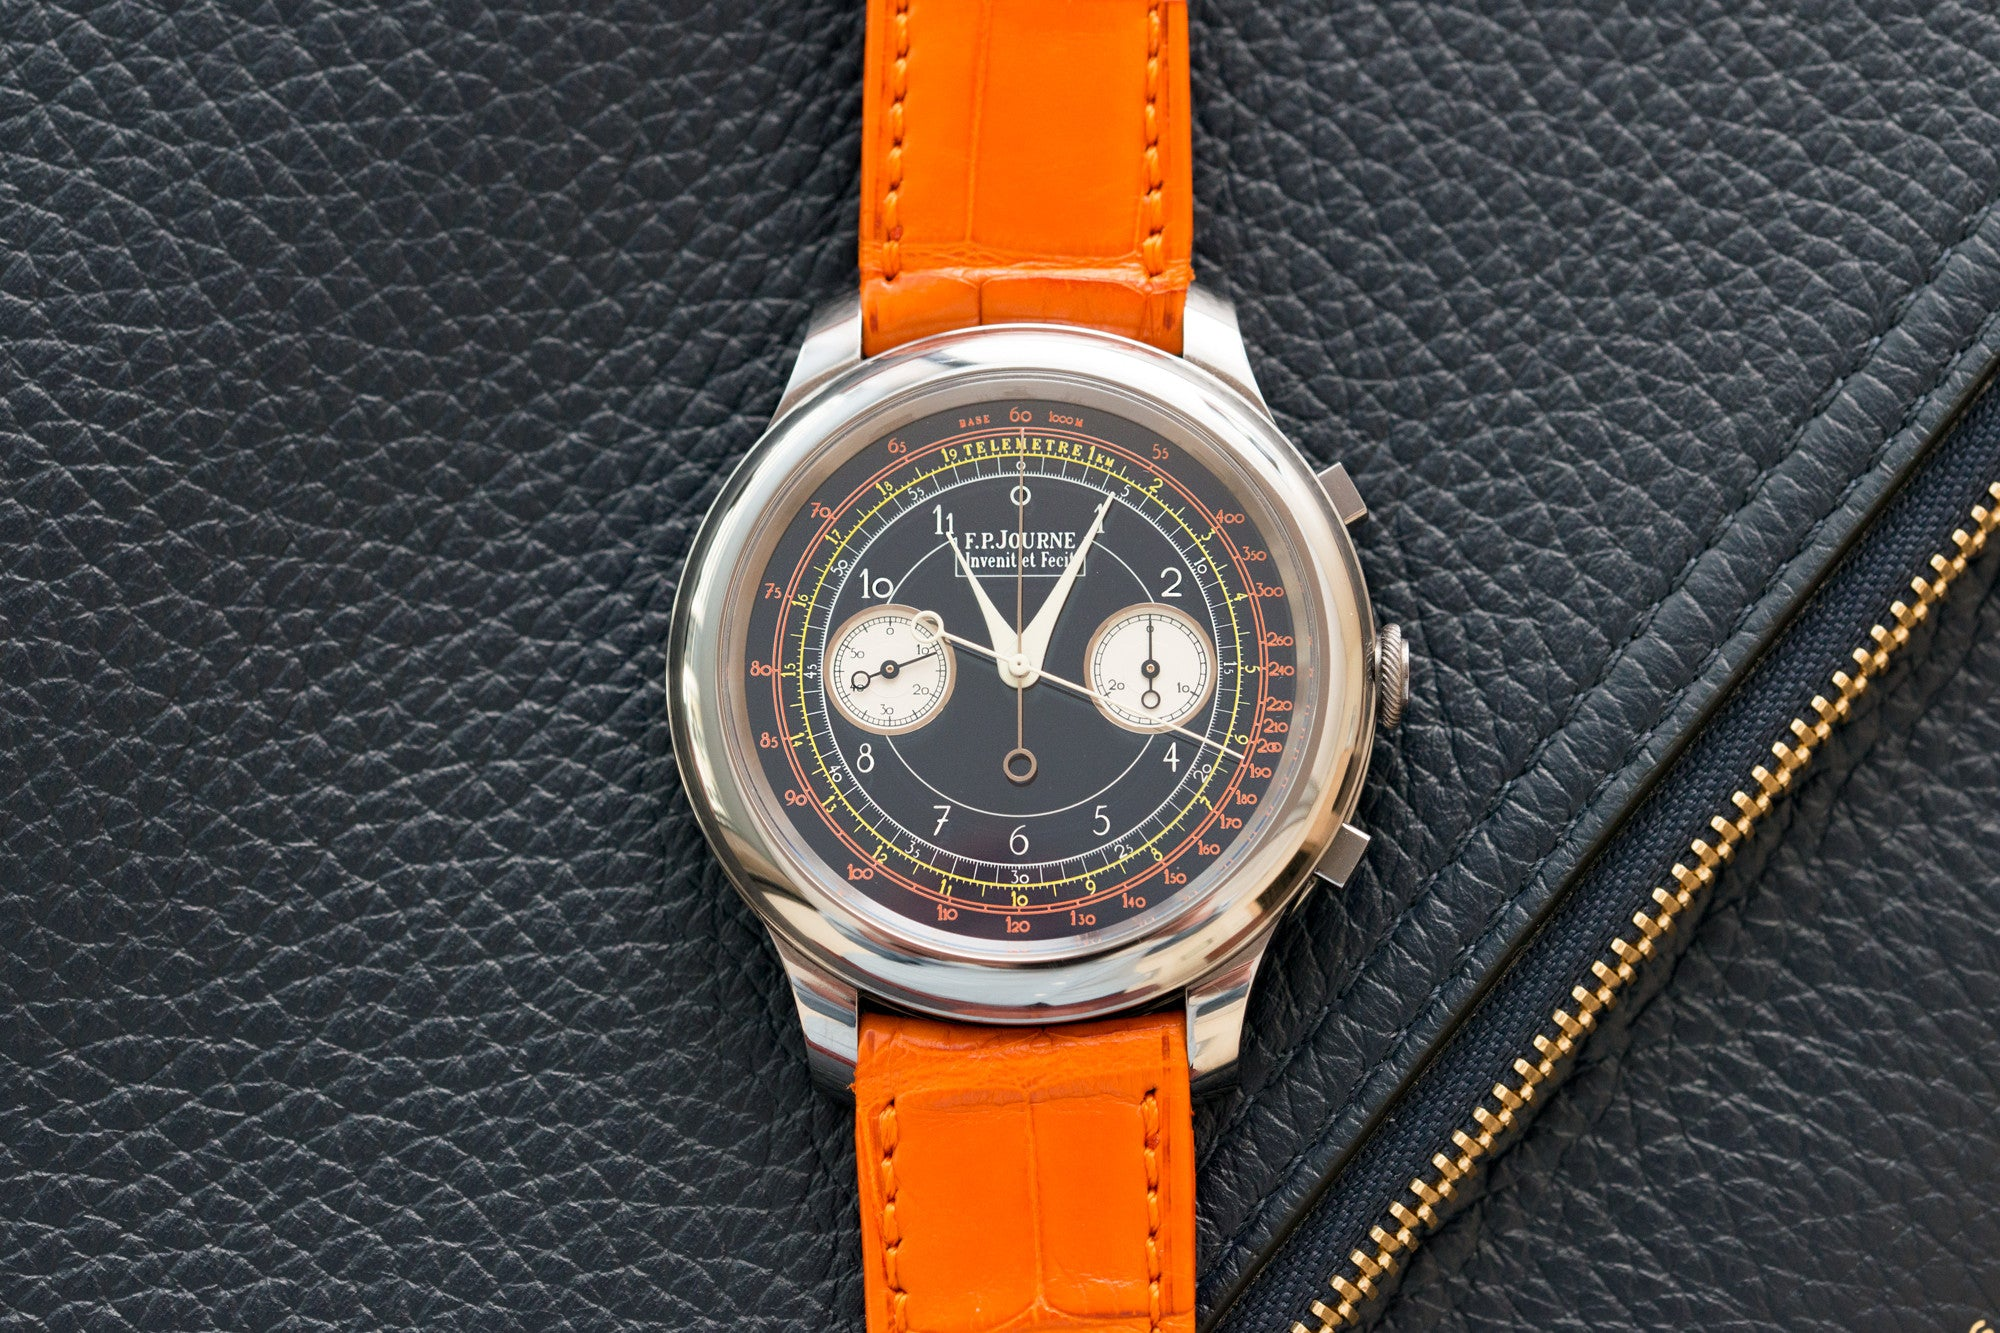 F. P. Journe Only Watch 2017 split seconds chronograph at A Collected Man